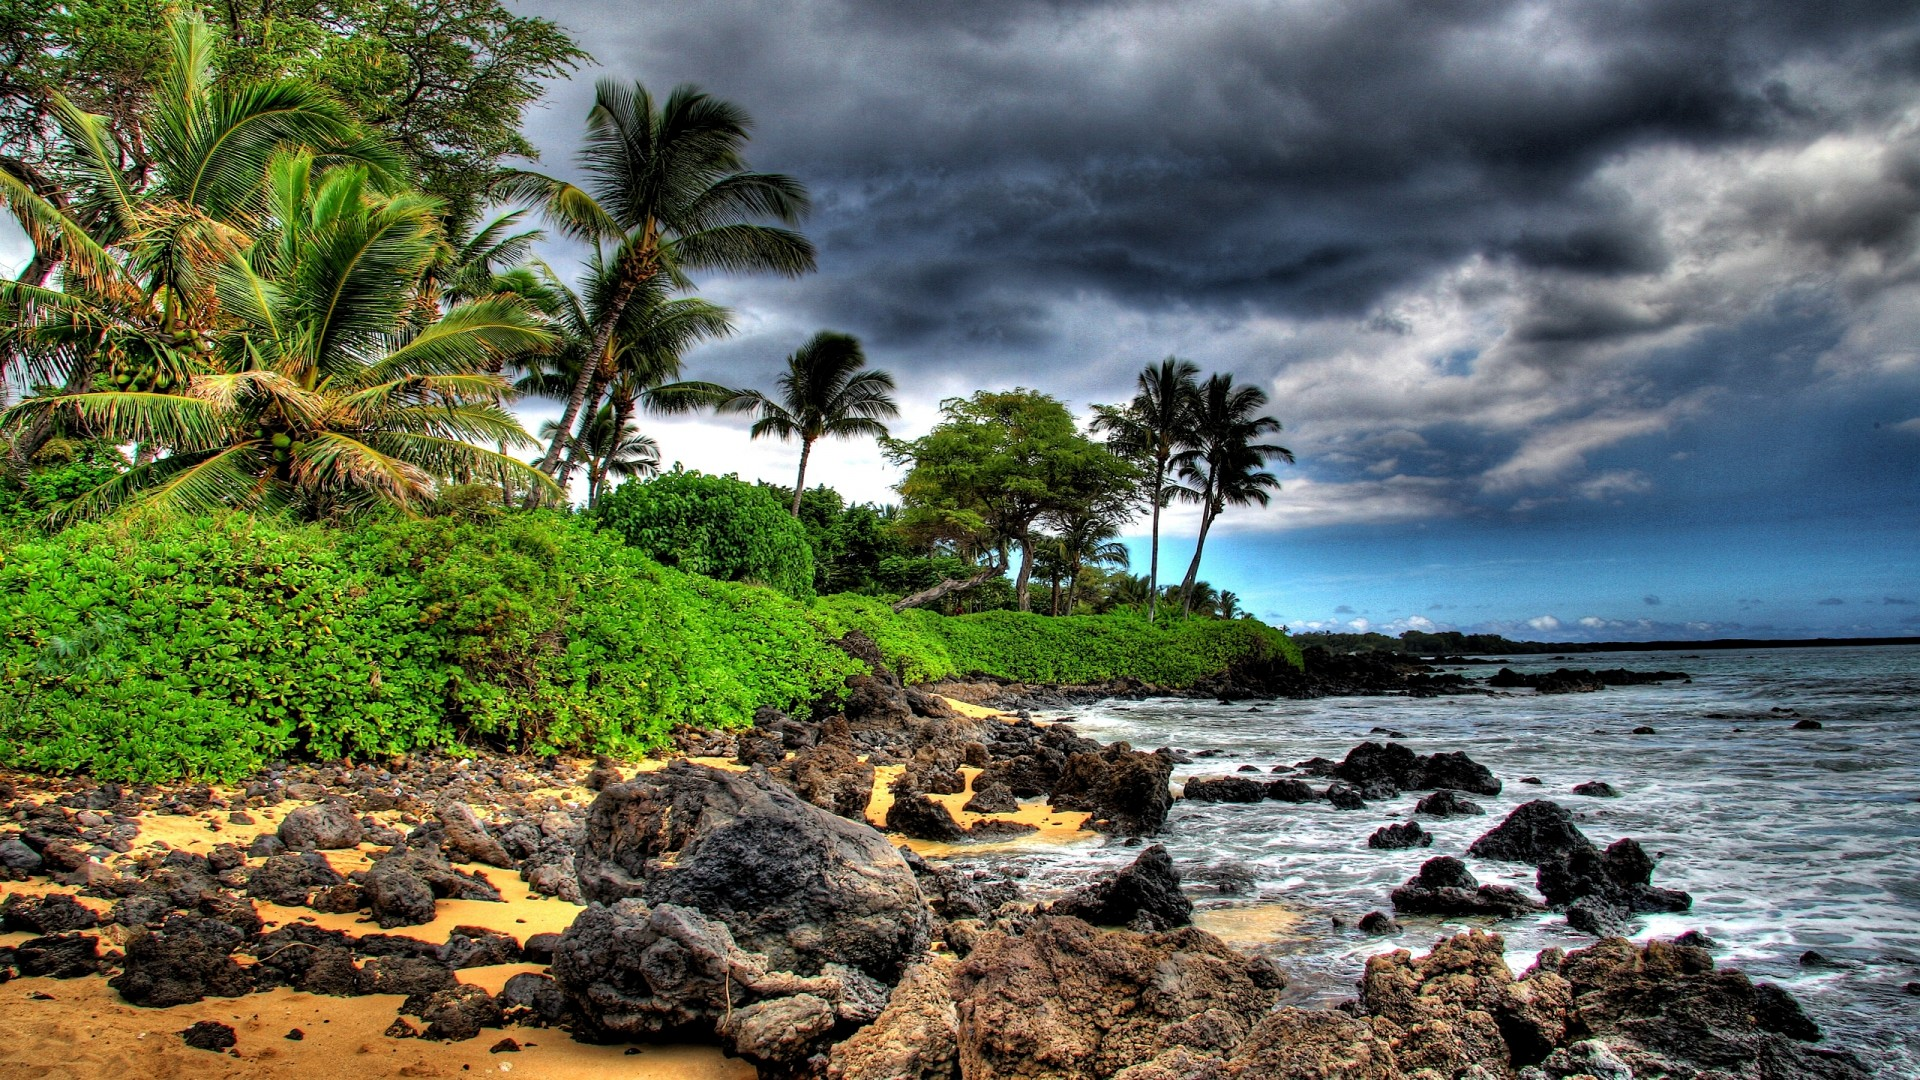 Res: 1920x1080, maui-hawaii-wallpaper-for--hdtv-1080p-15-